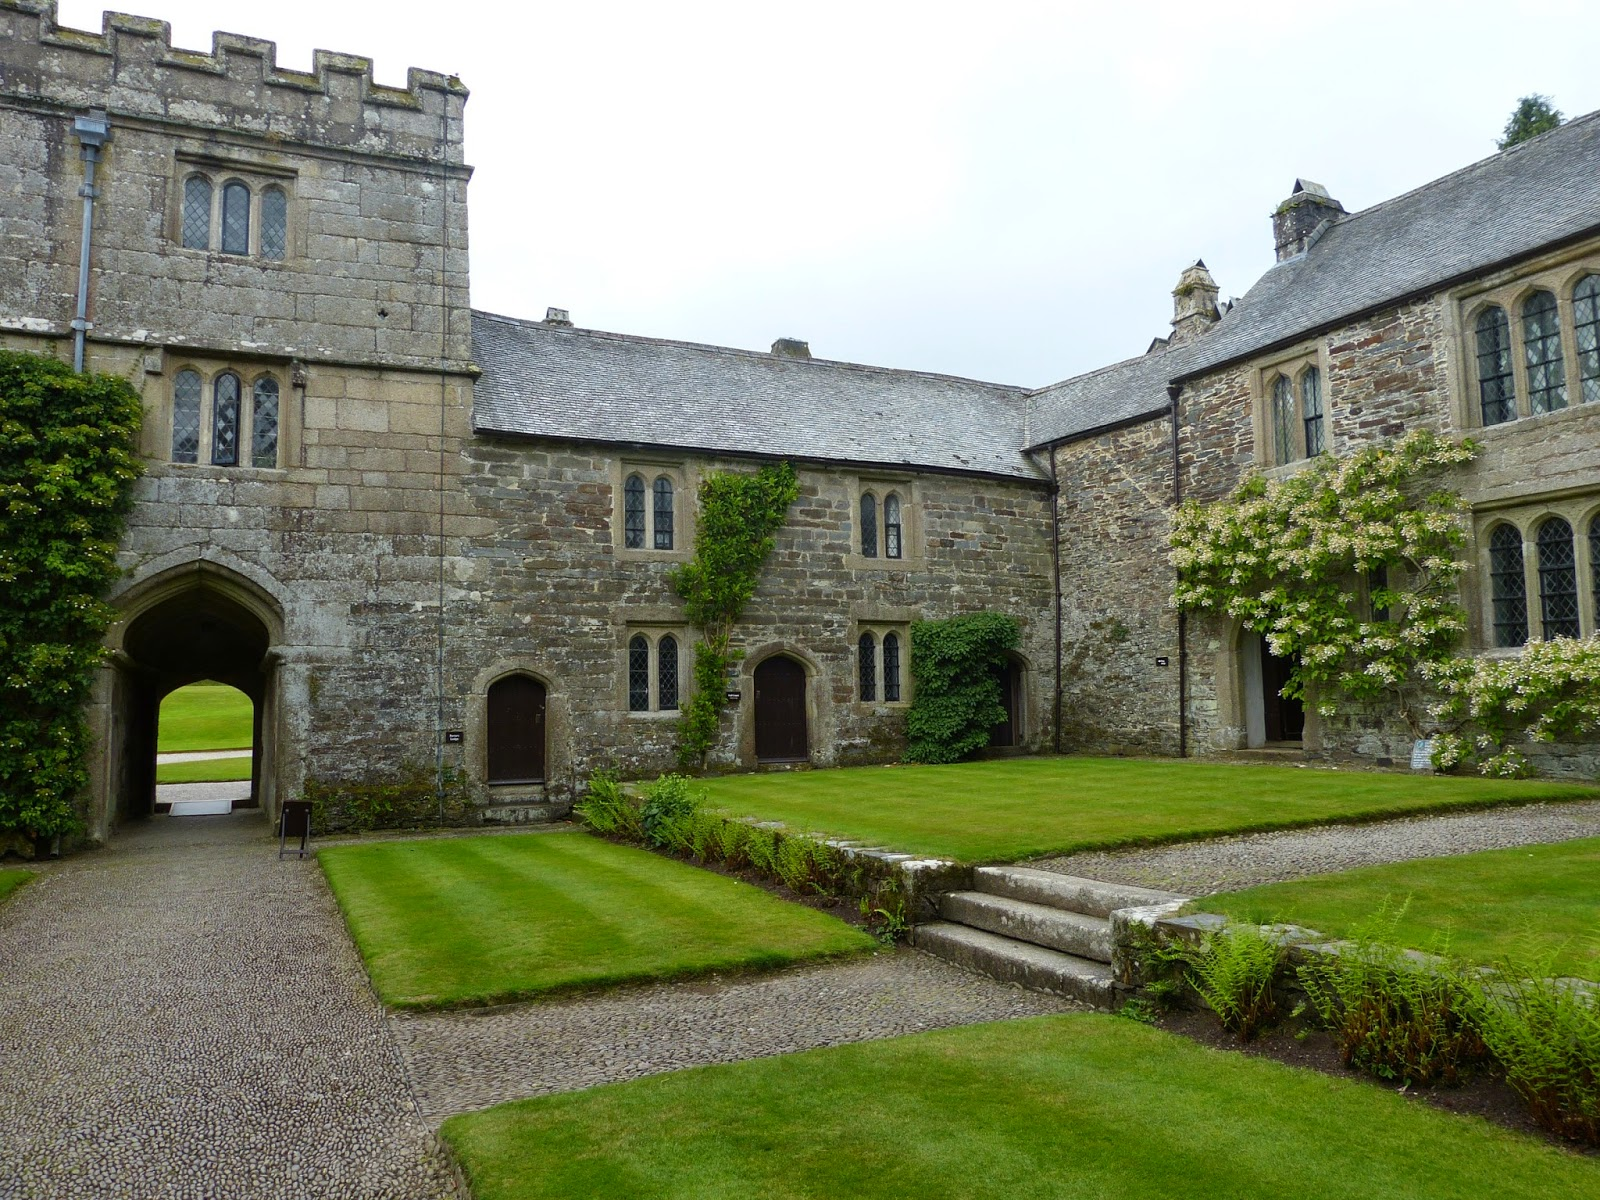 The courtyard at Cotehele